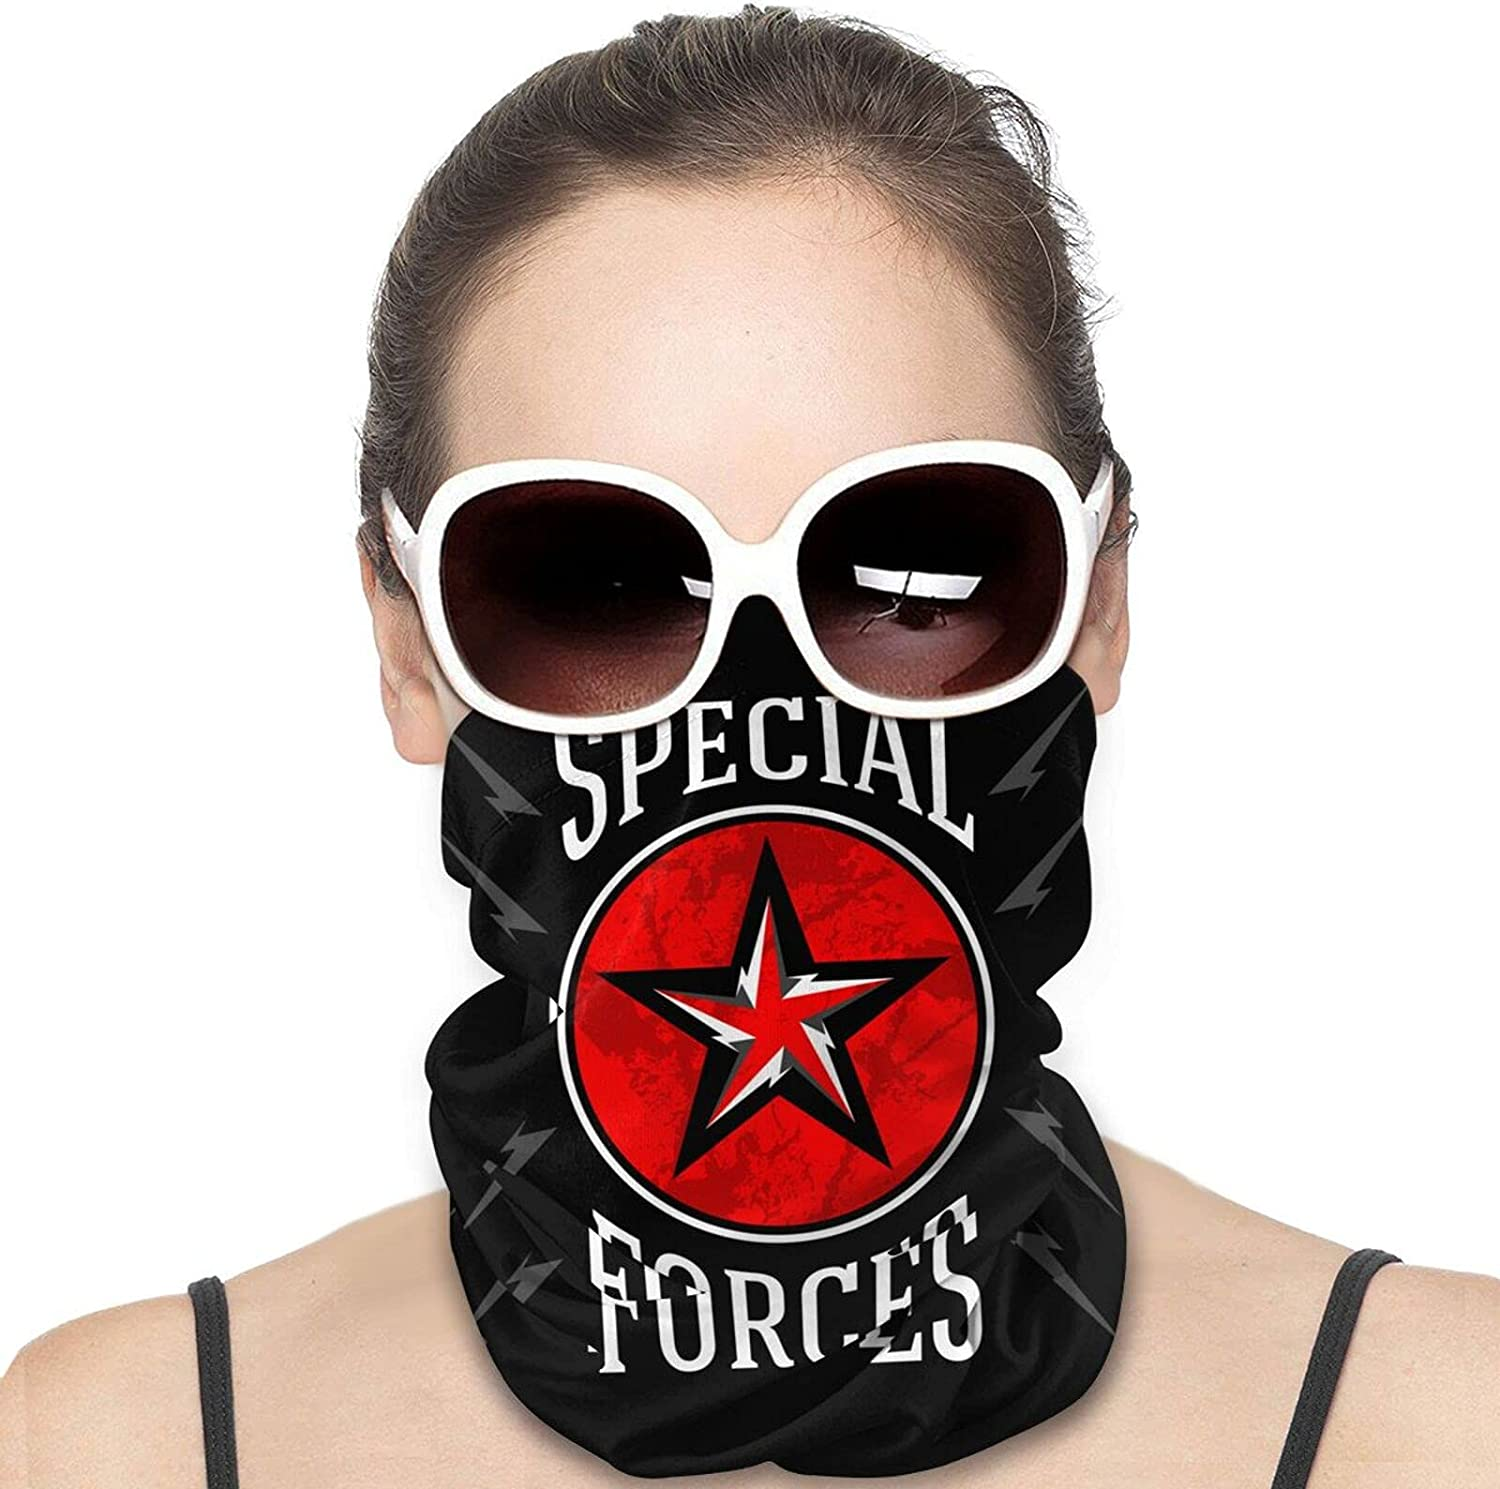 Special Forces Military Emblem Royalty Round Neck Gaiter Bandnas Face Cover Uv Protection Prevent bask in Ice Scarf Headbands Perfect for Motorcycle Cycling Running Festival Raves Outdoors